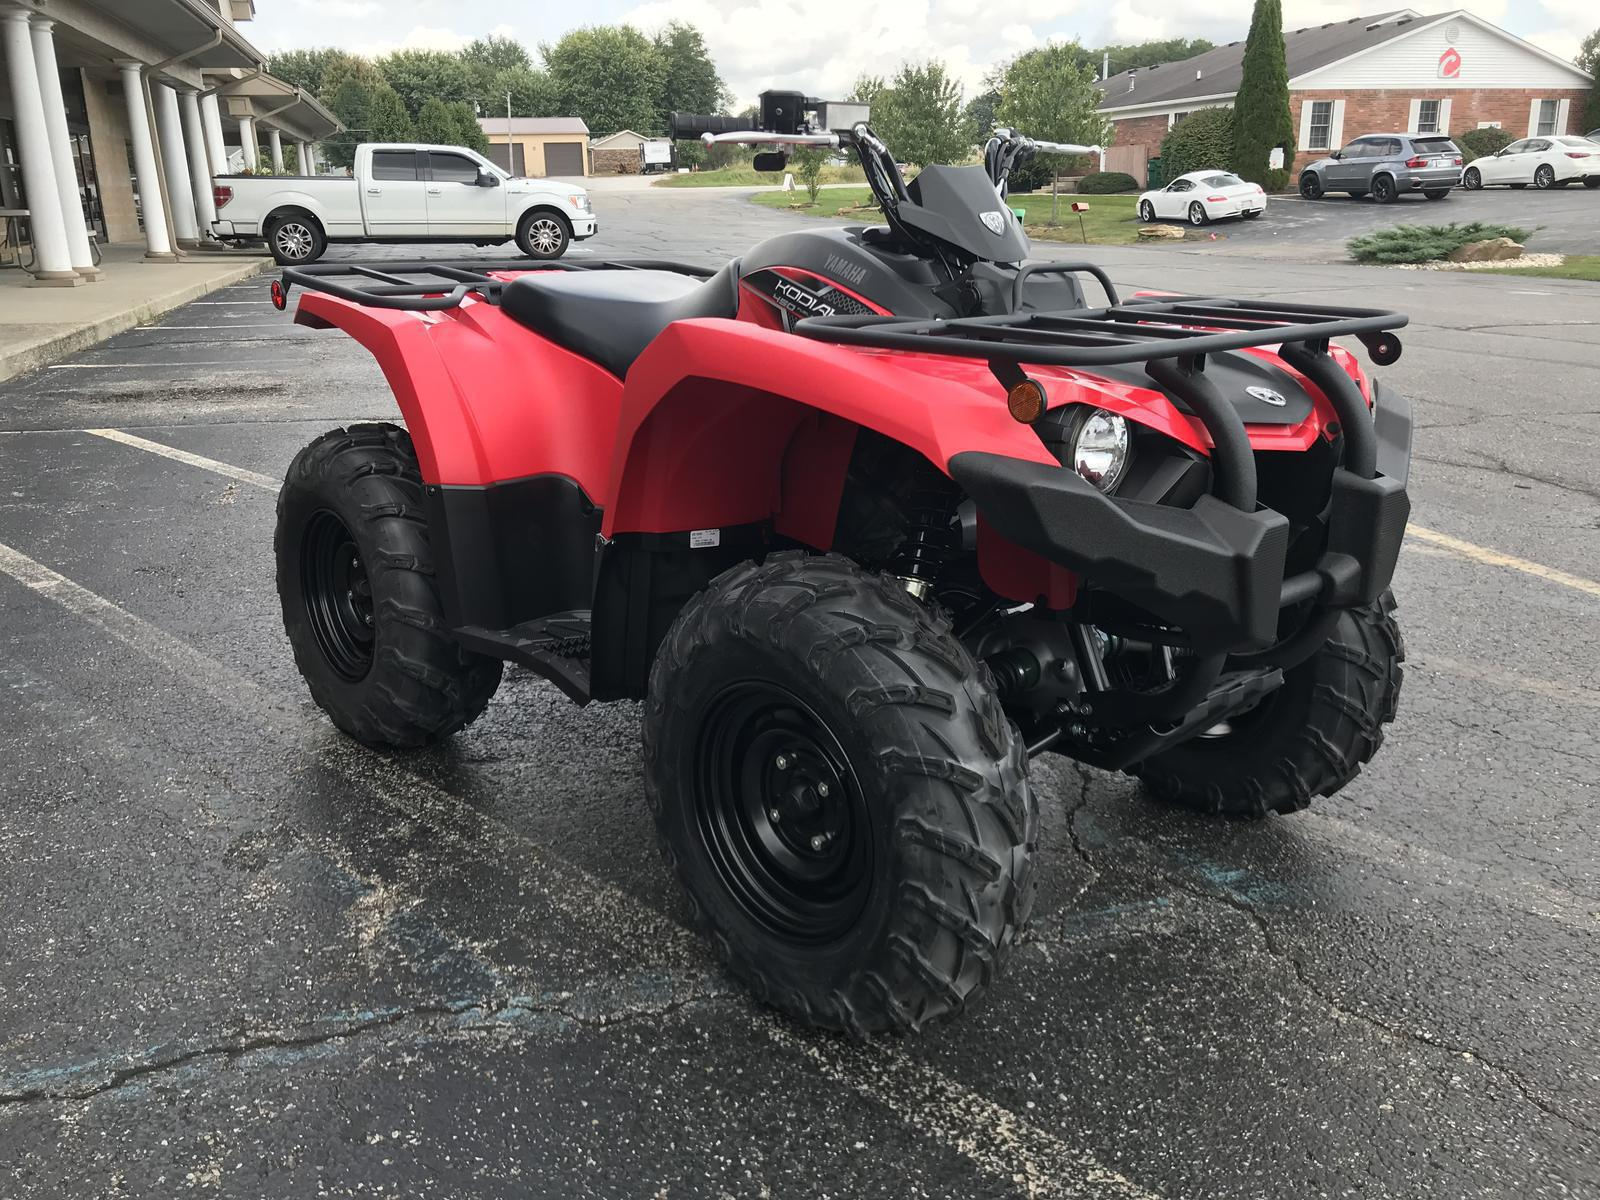 2019 Yamaha Kodiak 450 4wd For Sale In Martinsville Flat Out Fuel Filter 19 Red 04